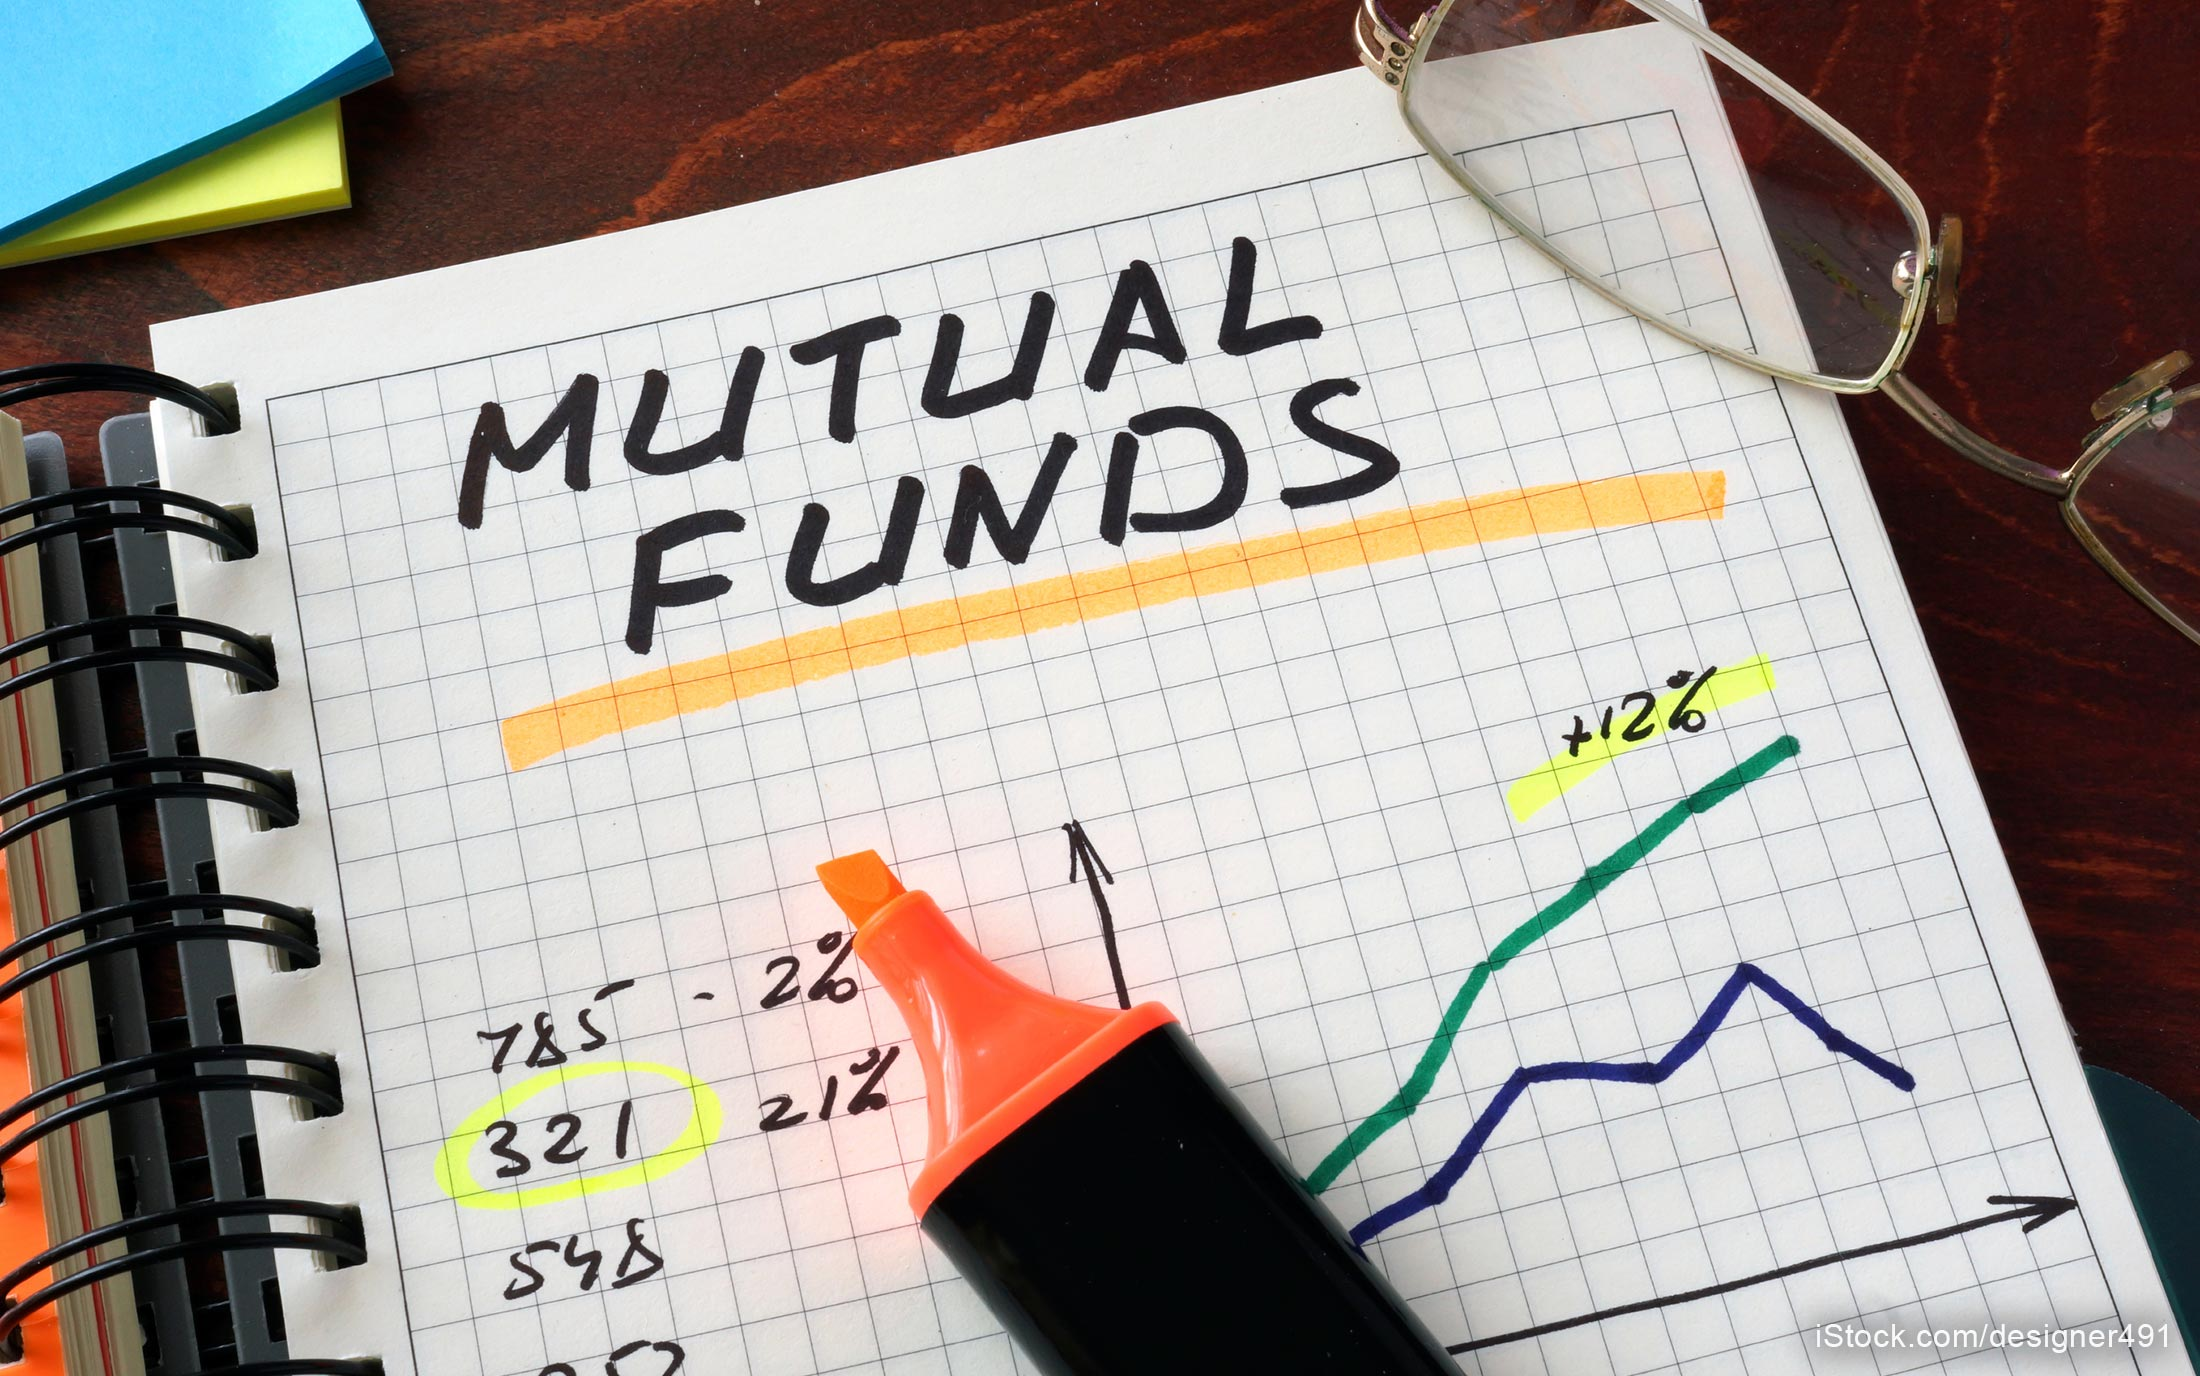 Best mutual funds to own-6765